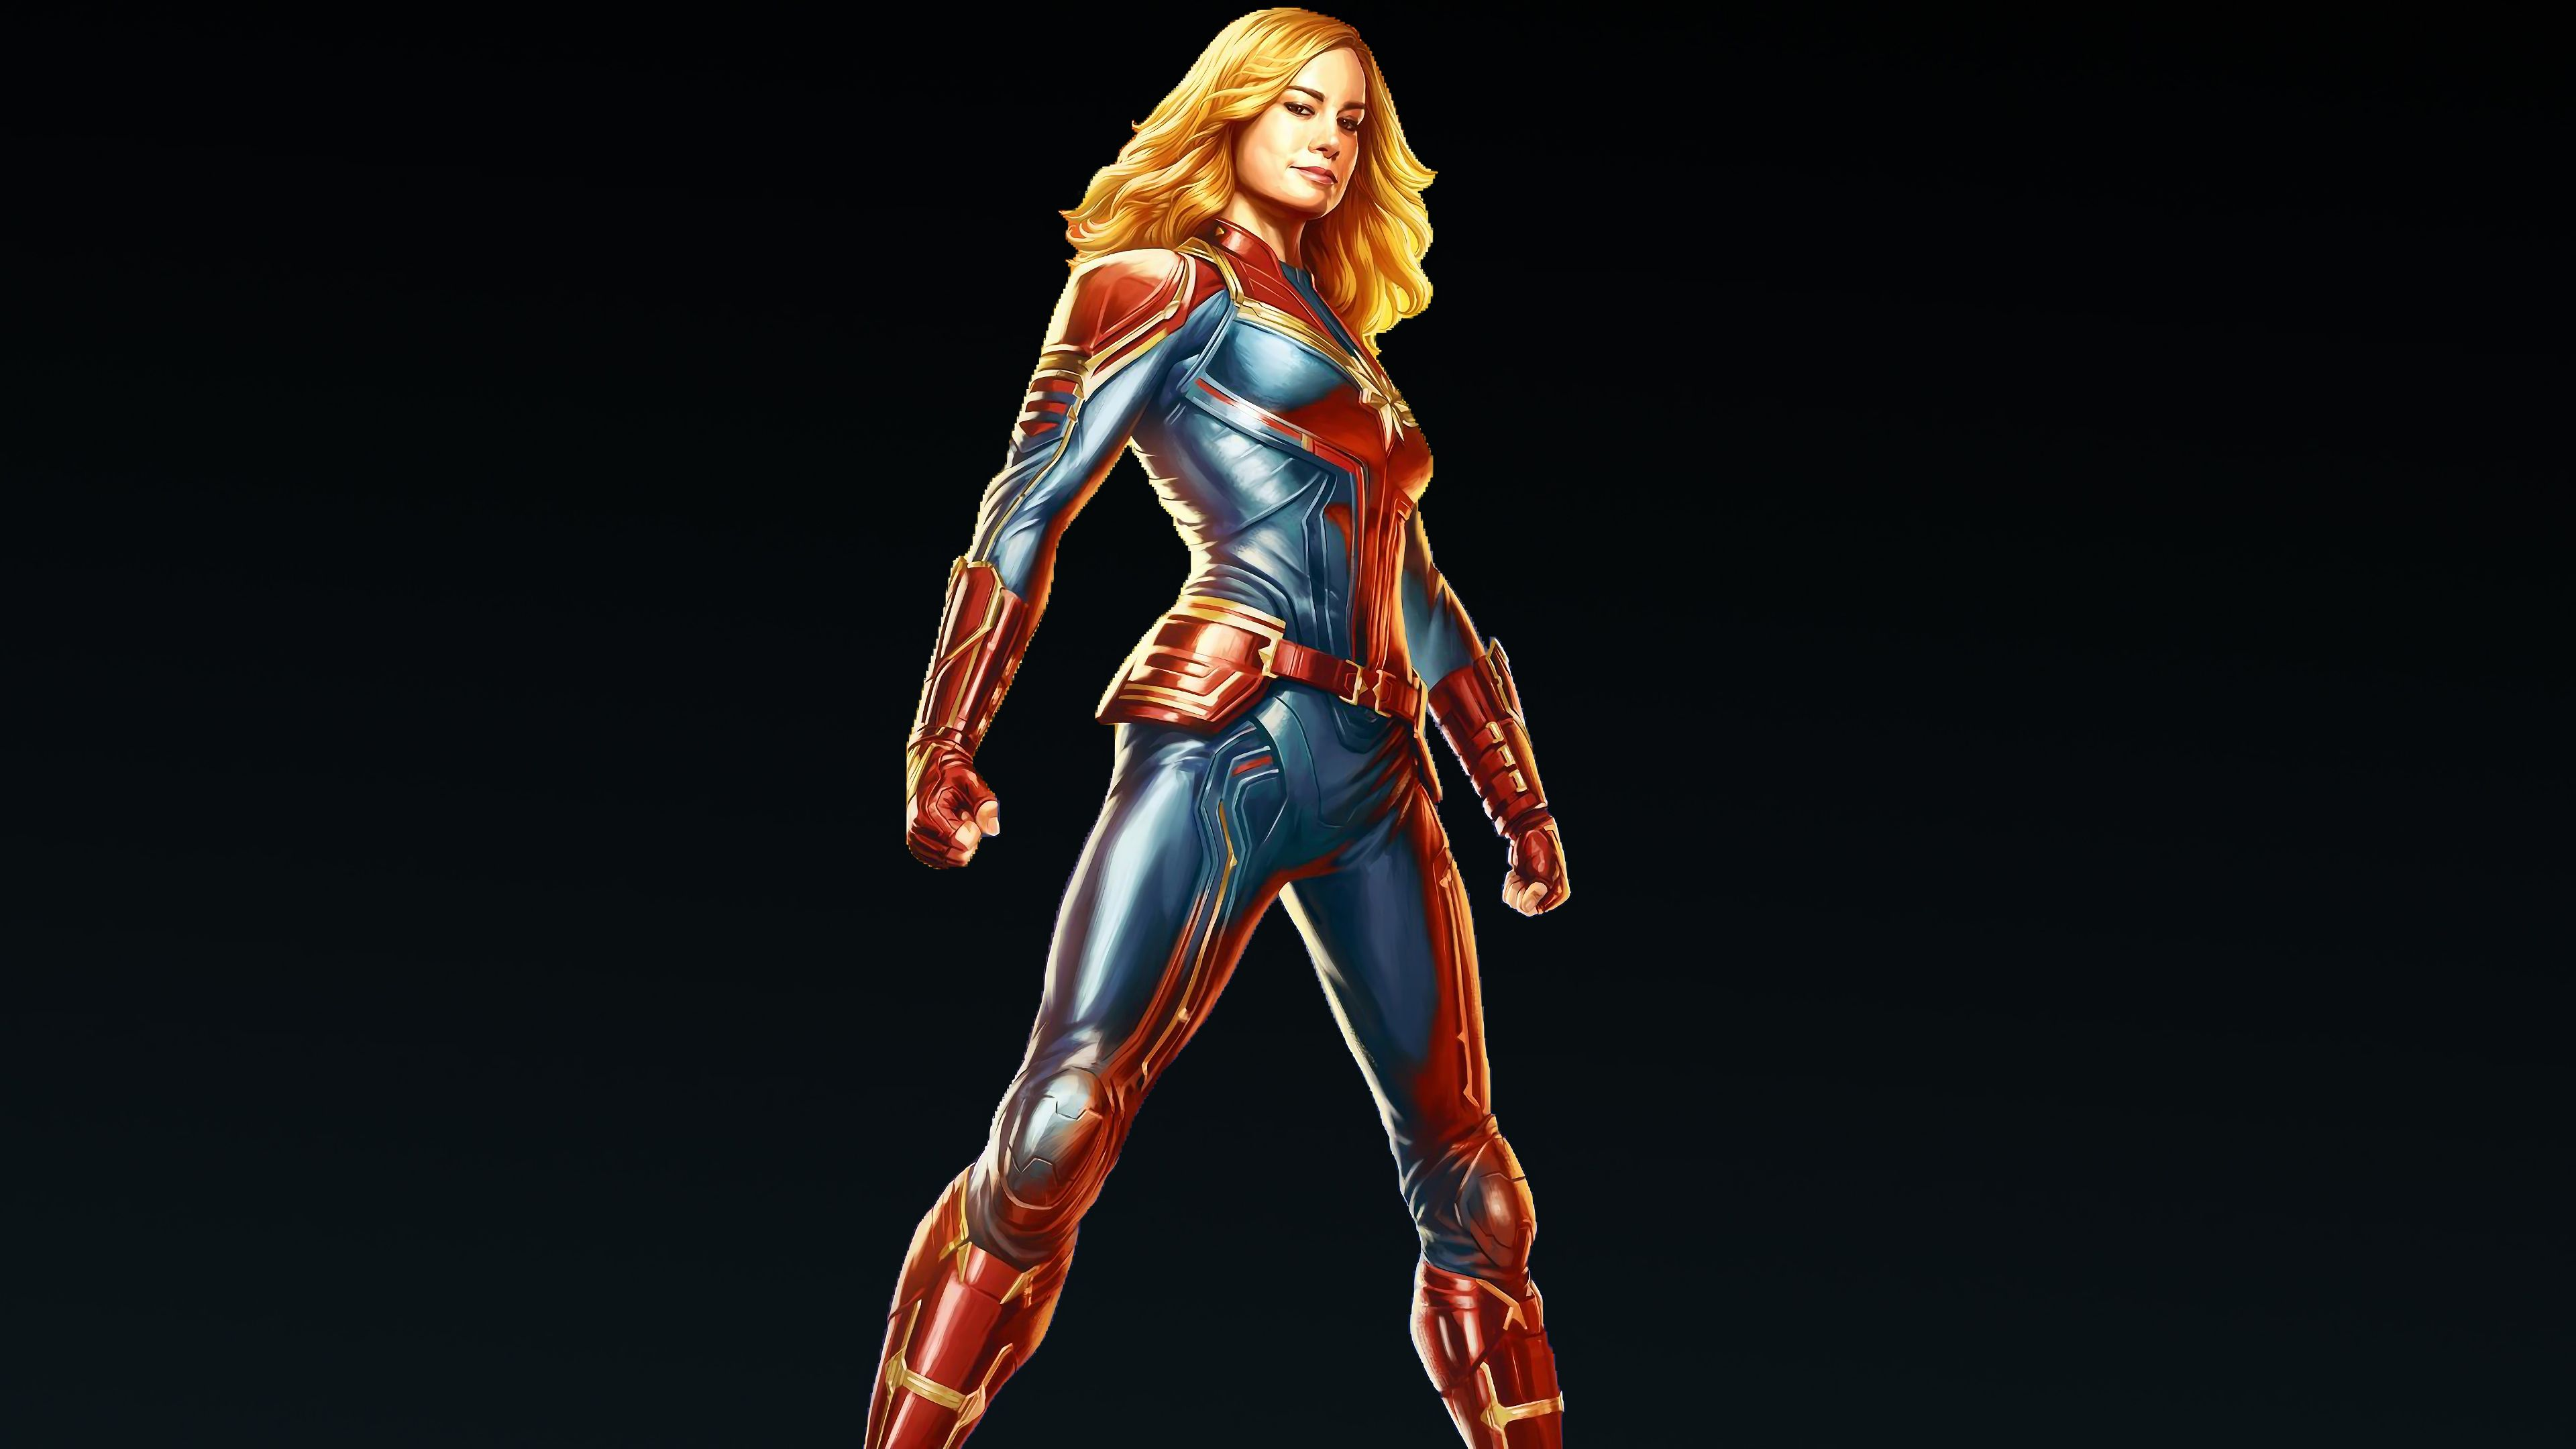 3840x2160 Captain Marvel Movie 2019 Carol Danvers 4K Wallpaper Marvel ...